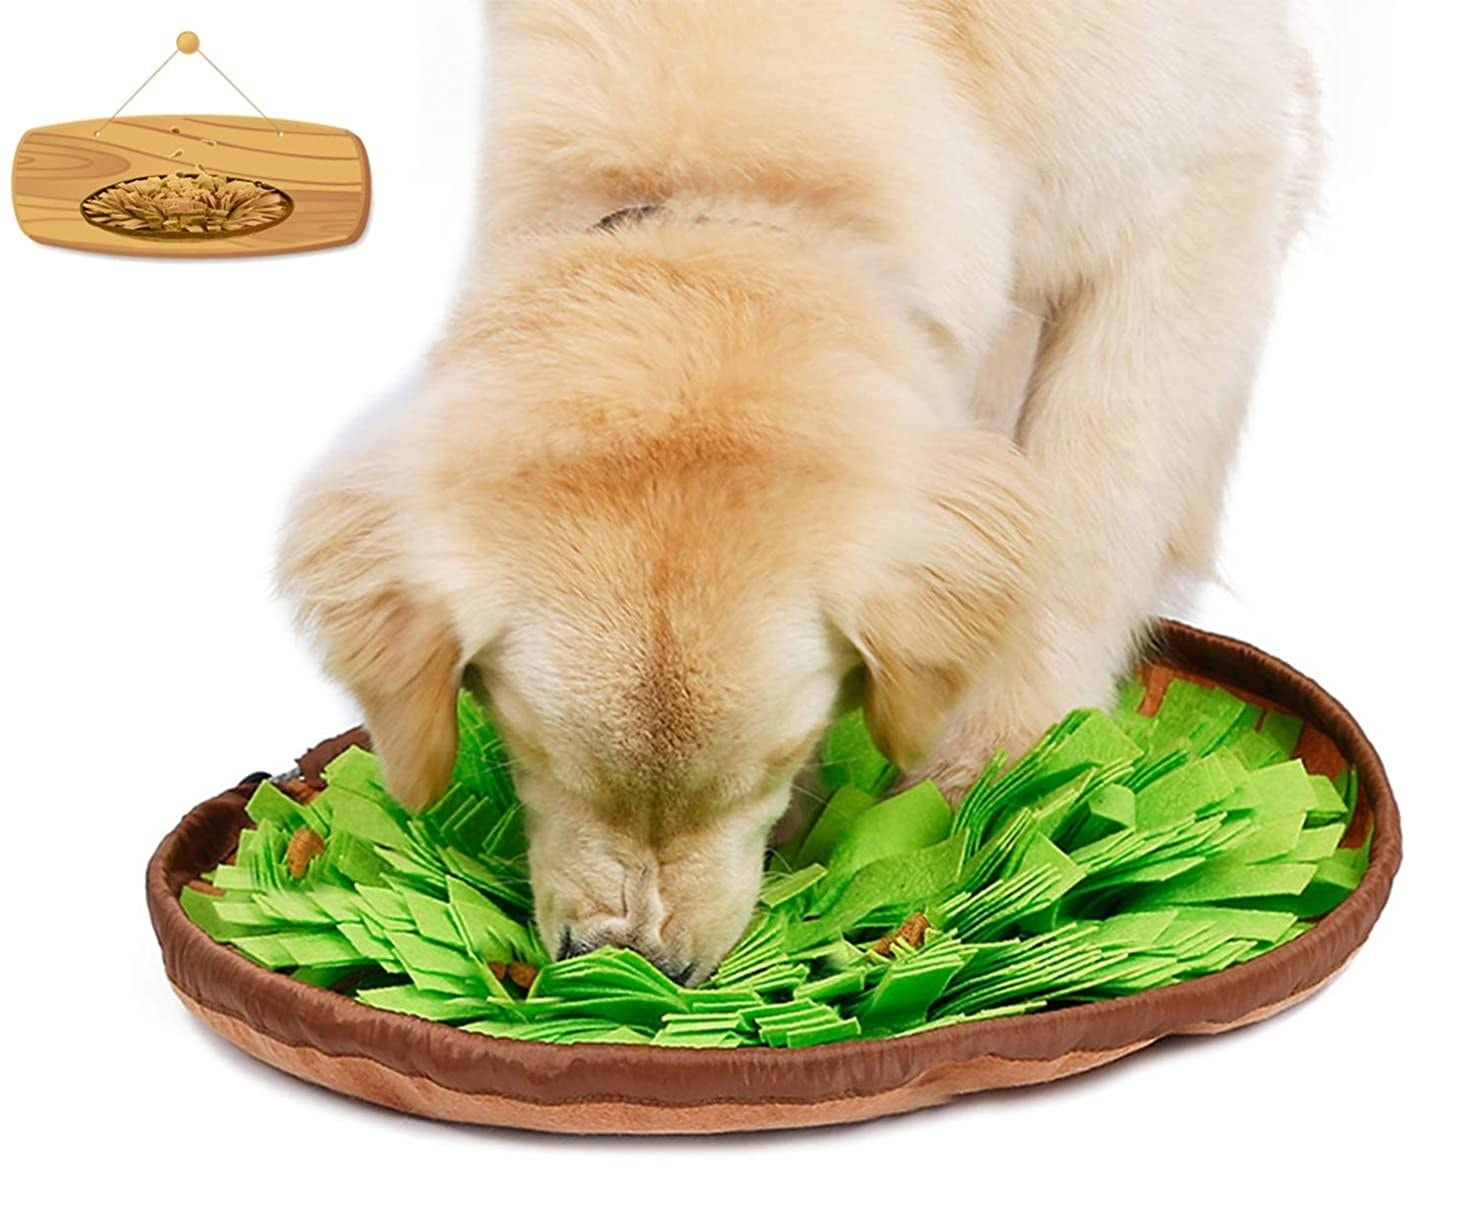 Model dog sniffs out his food in the brown and green snuffle mat